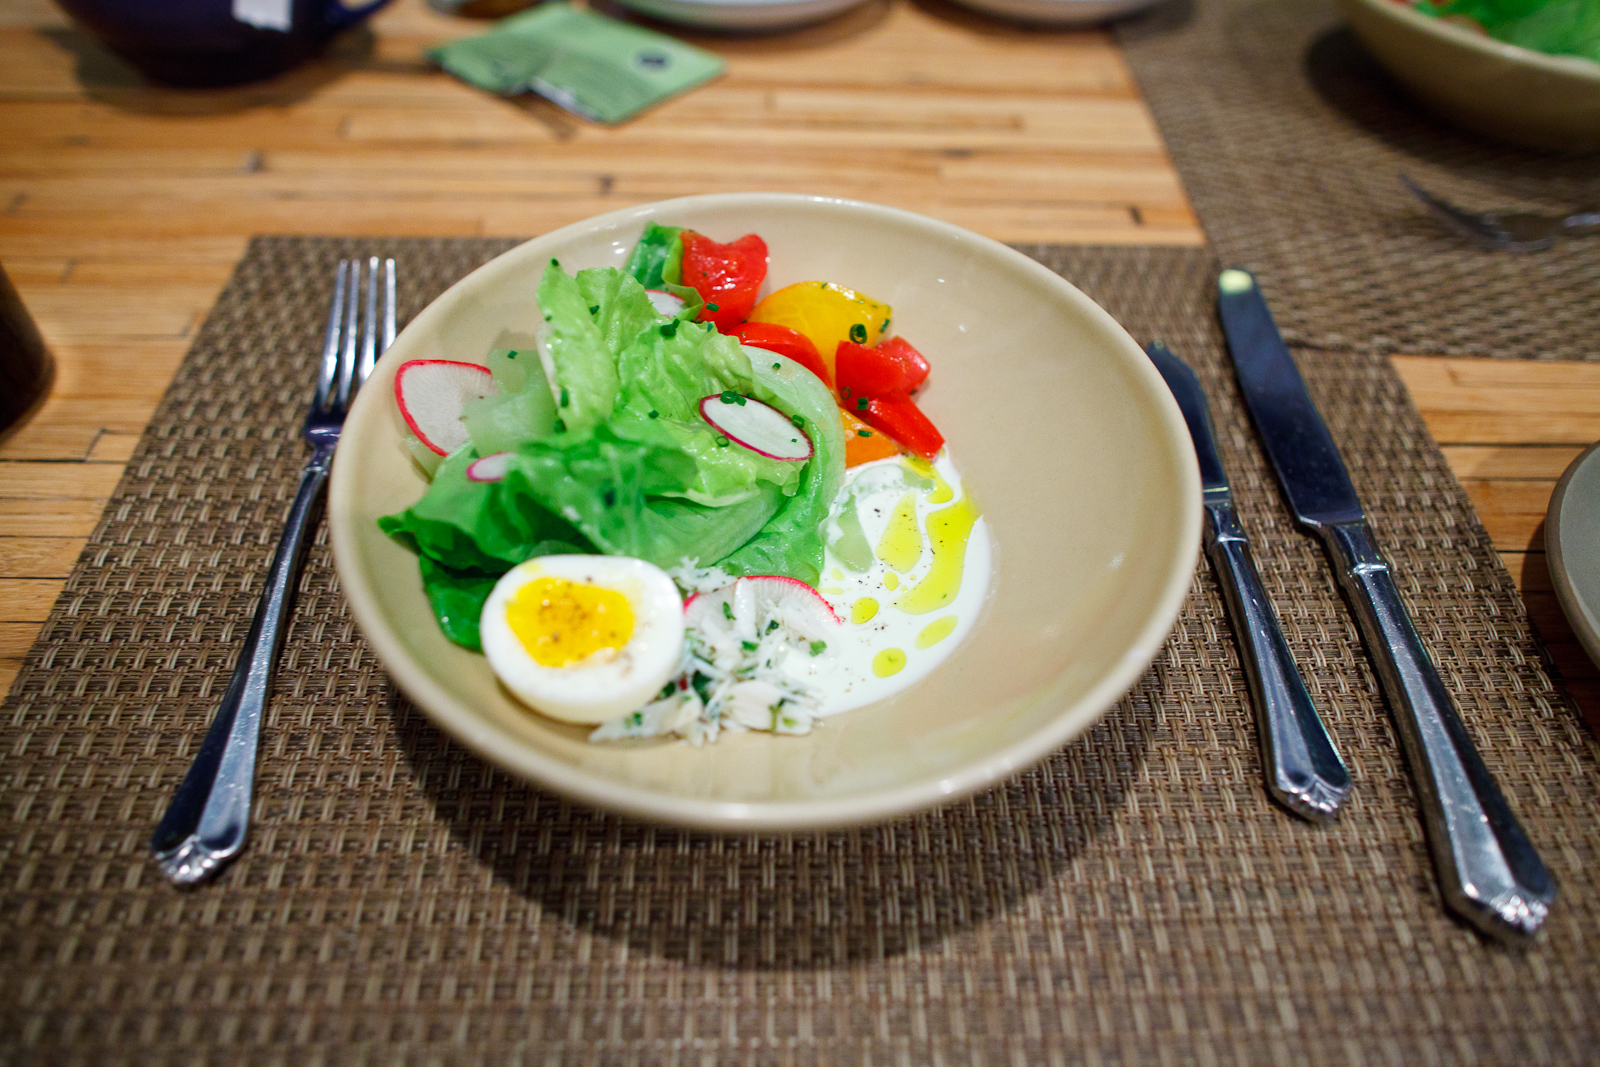 4th Course: Kurios Farms Bibb Lettuce with SC Blue Crab, Soft Boiled Egg, Heirloom Tomatoes, Shaved Radish and Cucumber Buttermilk